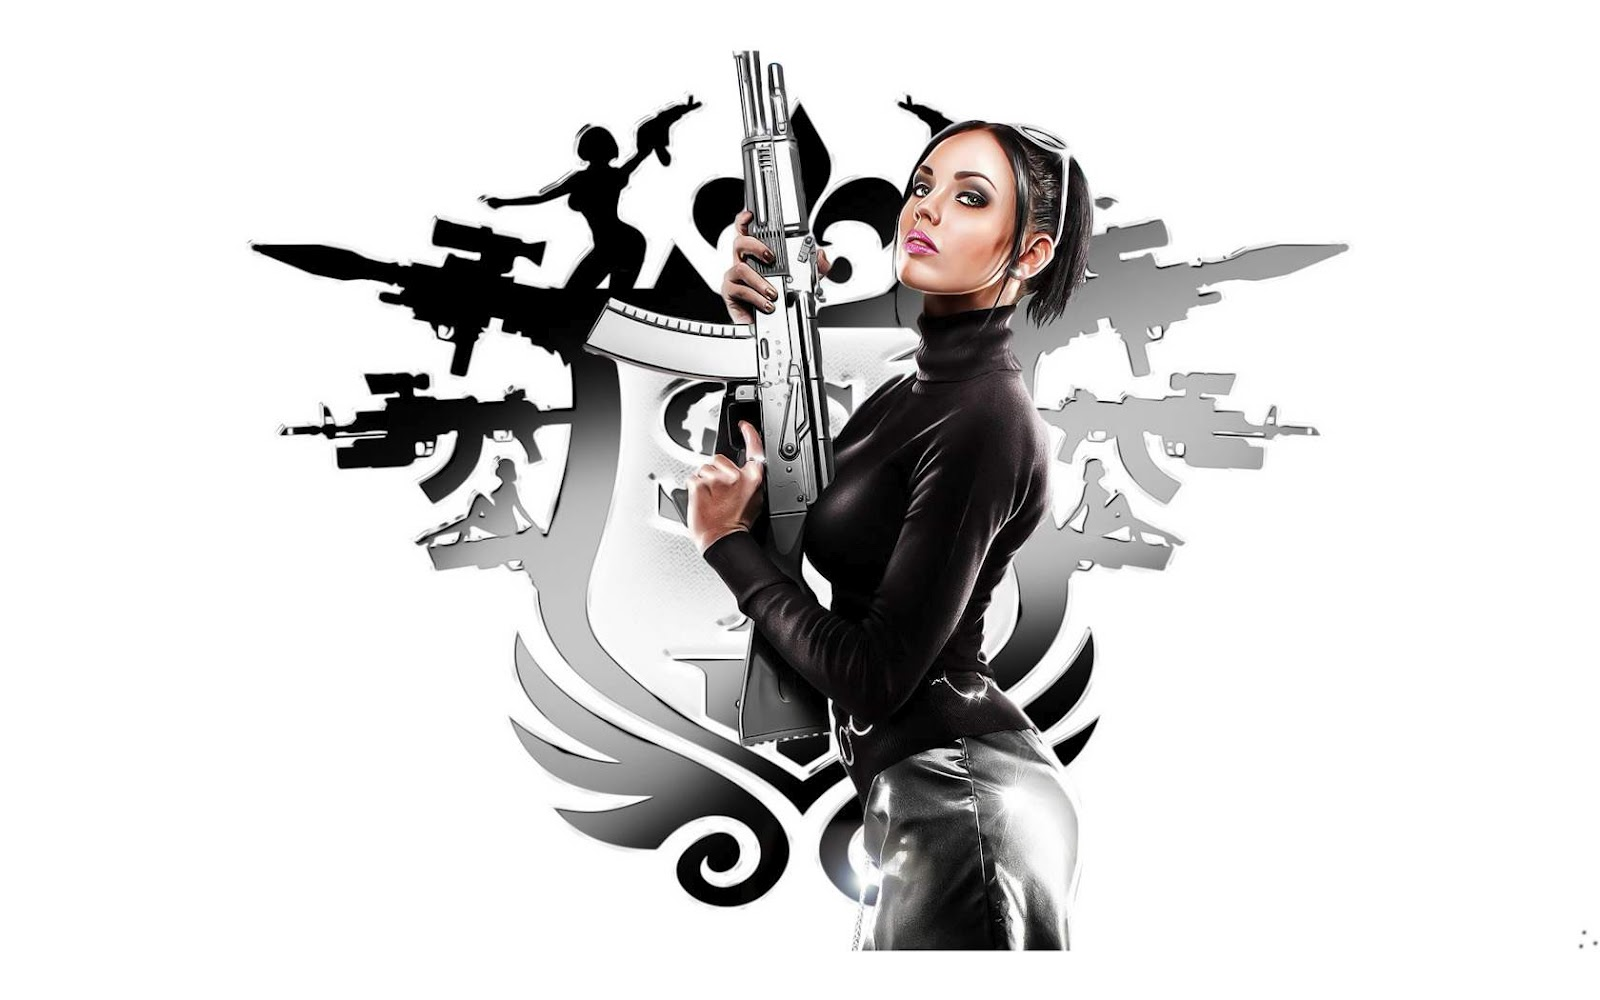 http://2.bp.blogspot.com/-wQ-zbwwN1hA/T4K4EeH3P1I/AAAAAAAABNw/tsVVBcPkePs/s1600/Saint_Row_Girl_Viola_DeWynter_with_AK-47_HD_Video_Game_Wallpaper-gWb.jpg